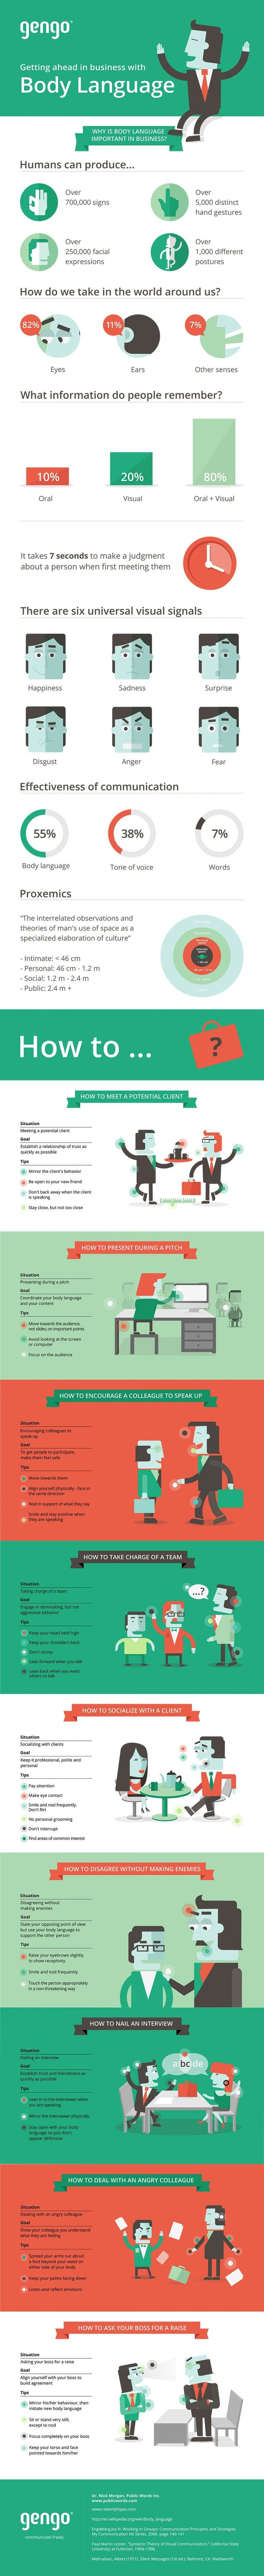 What Are 9 Ways To Get Ahead In Business With Body Language? #infographic